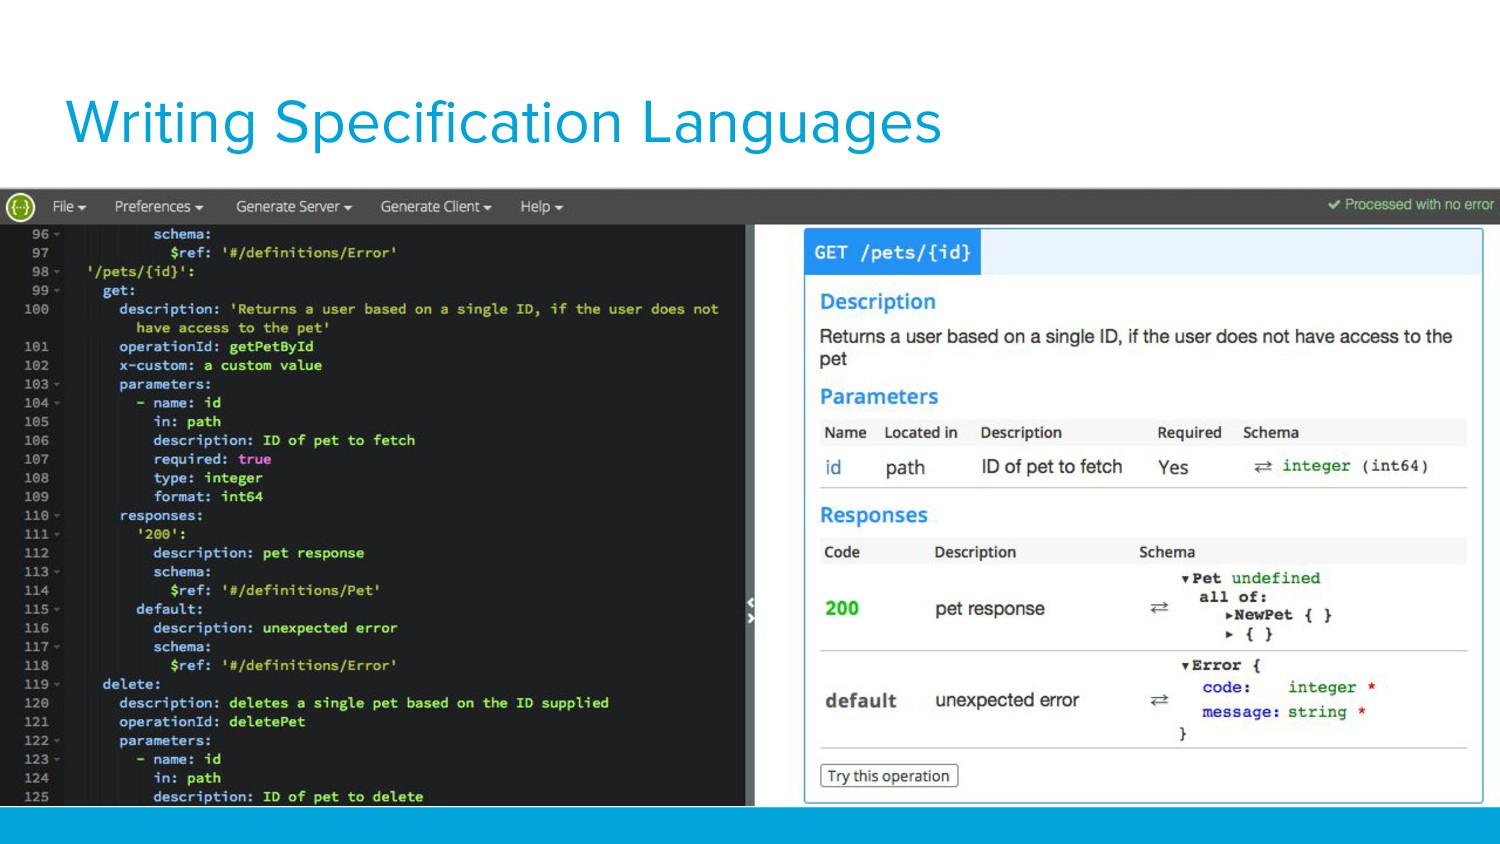 Writing Specification Languages